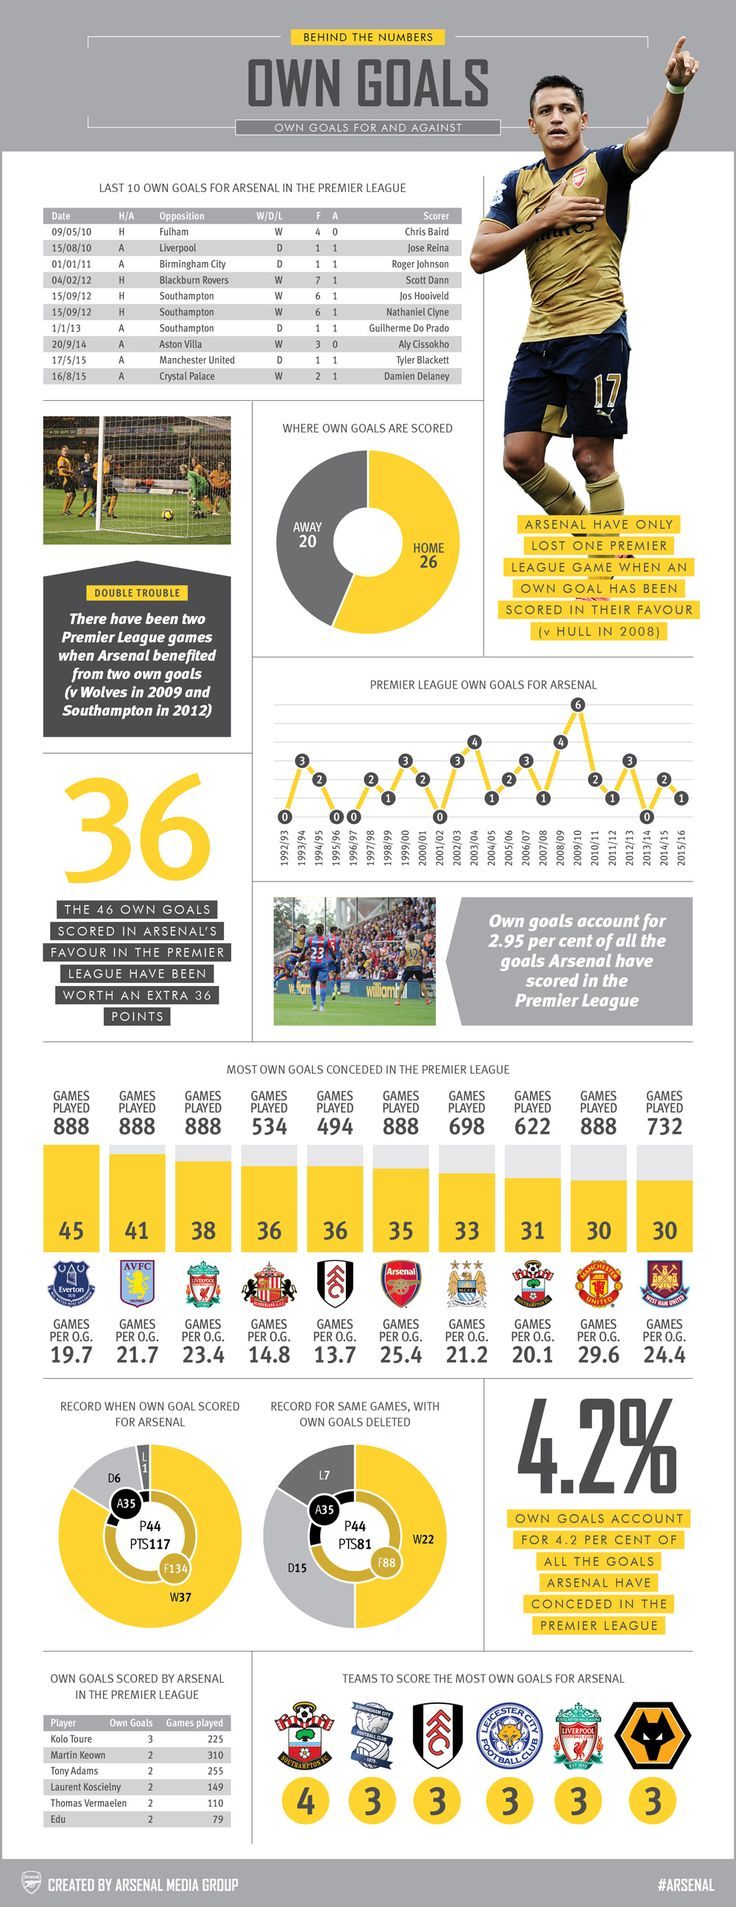 Behind the Numbers: Own goals Our latest infographic takes a closer look at own goals and examines all the key facts and figures.